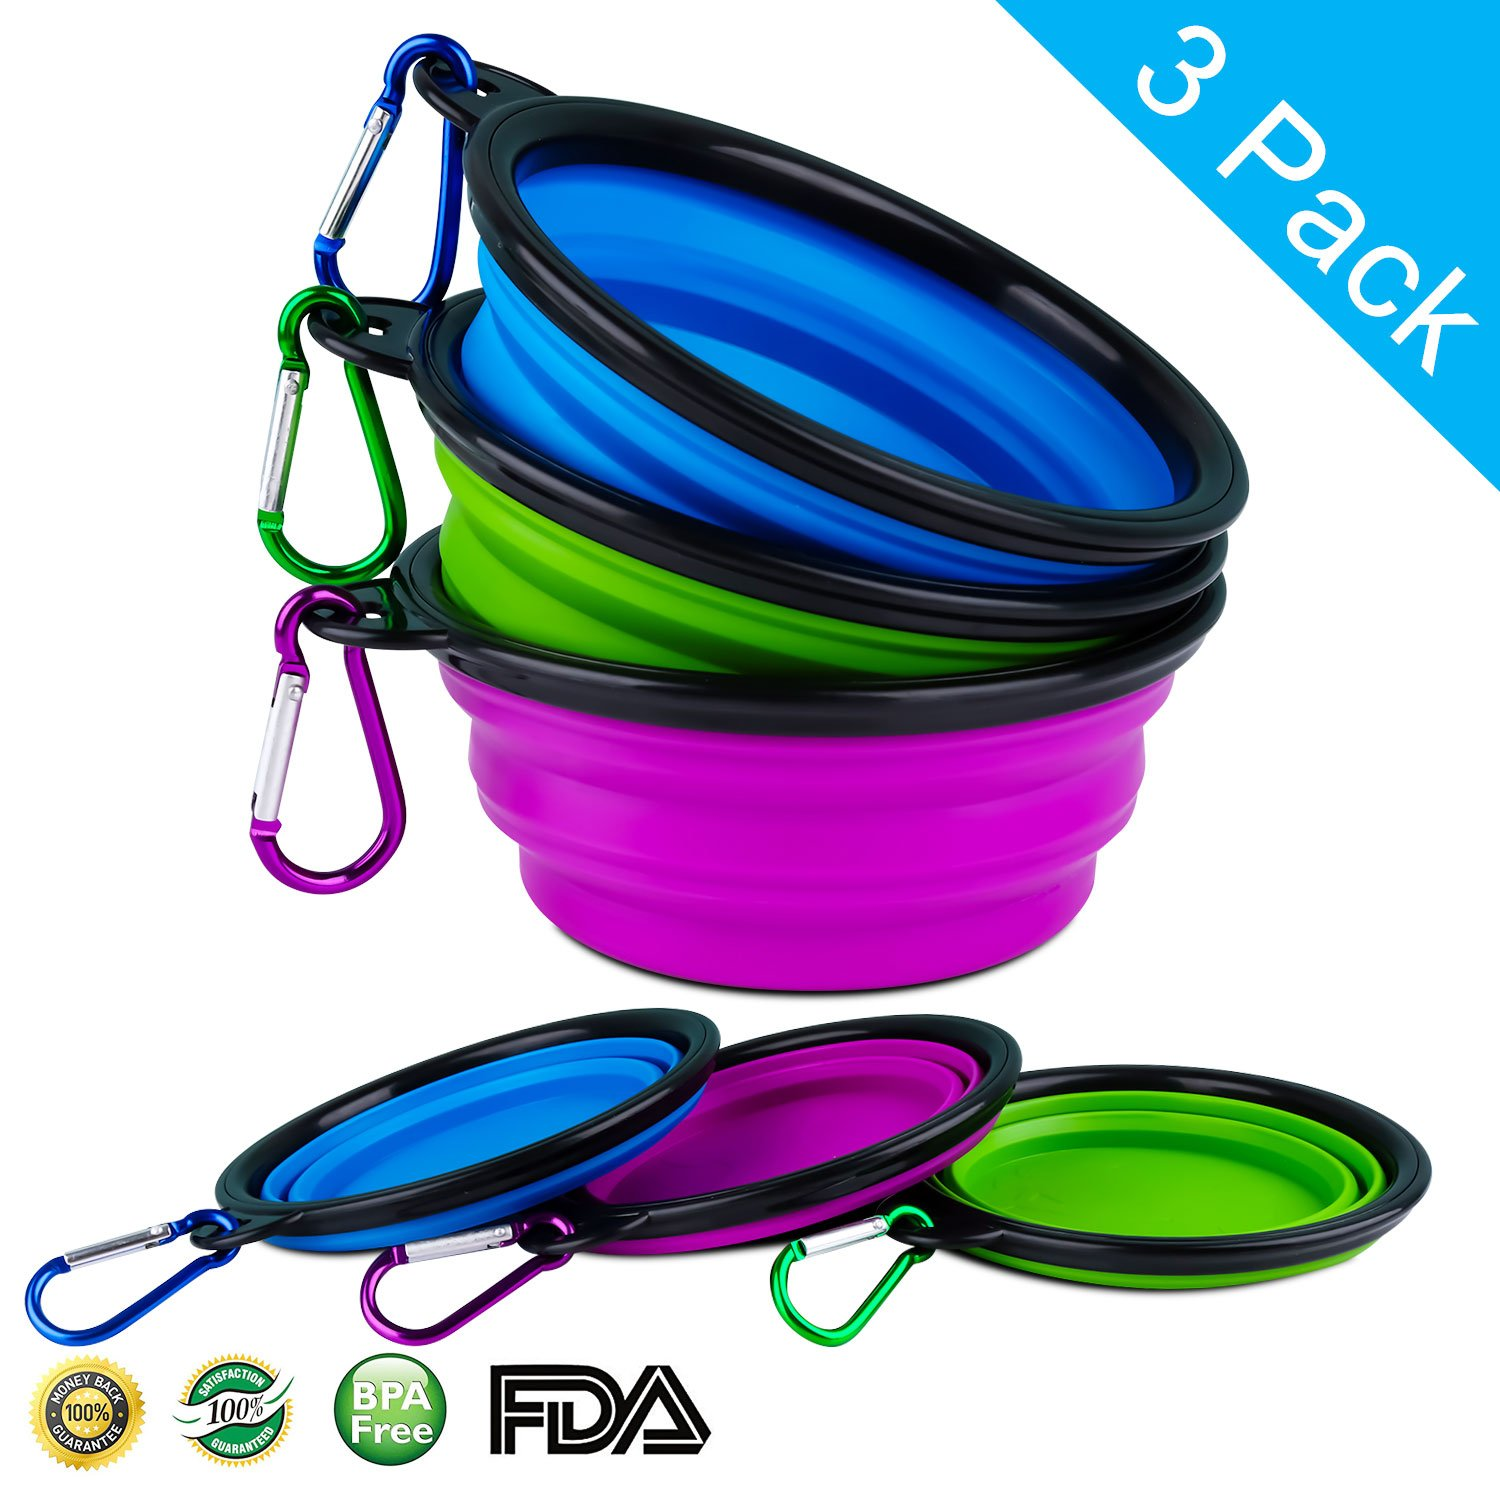 LOGROTATE Collapsible Dog Bowl, Pet Bowl Made of Food-Grade Silicone and BPA-Free&FDA Approved by, Portable Foldable Dog Food Water Feeding Bowl Travel Cat Bowl for Cat Dog Kitten Puppy (3 Pack)